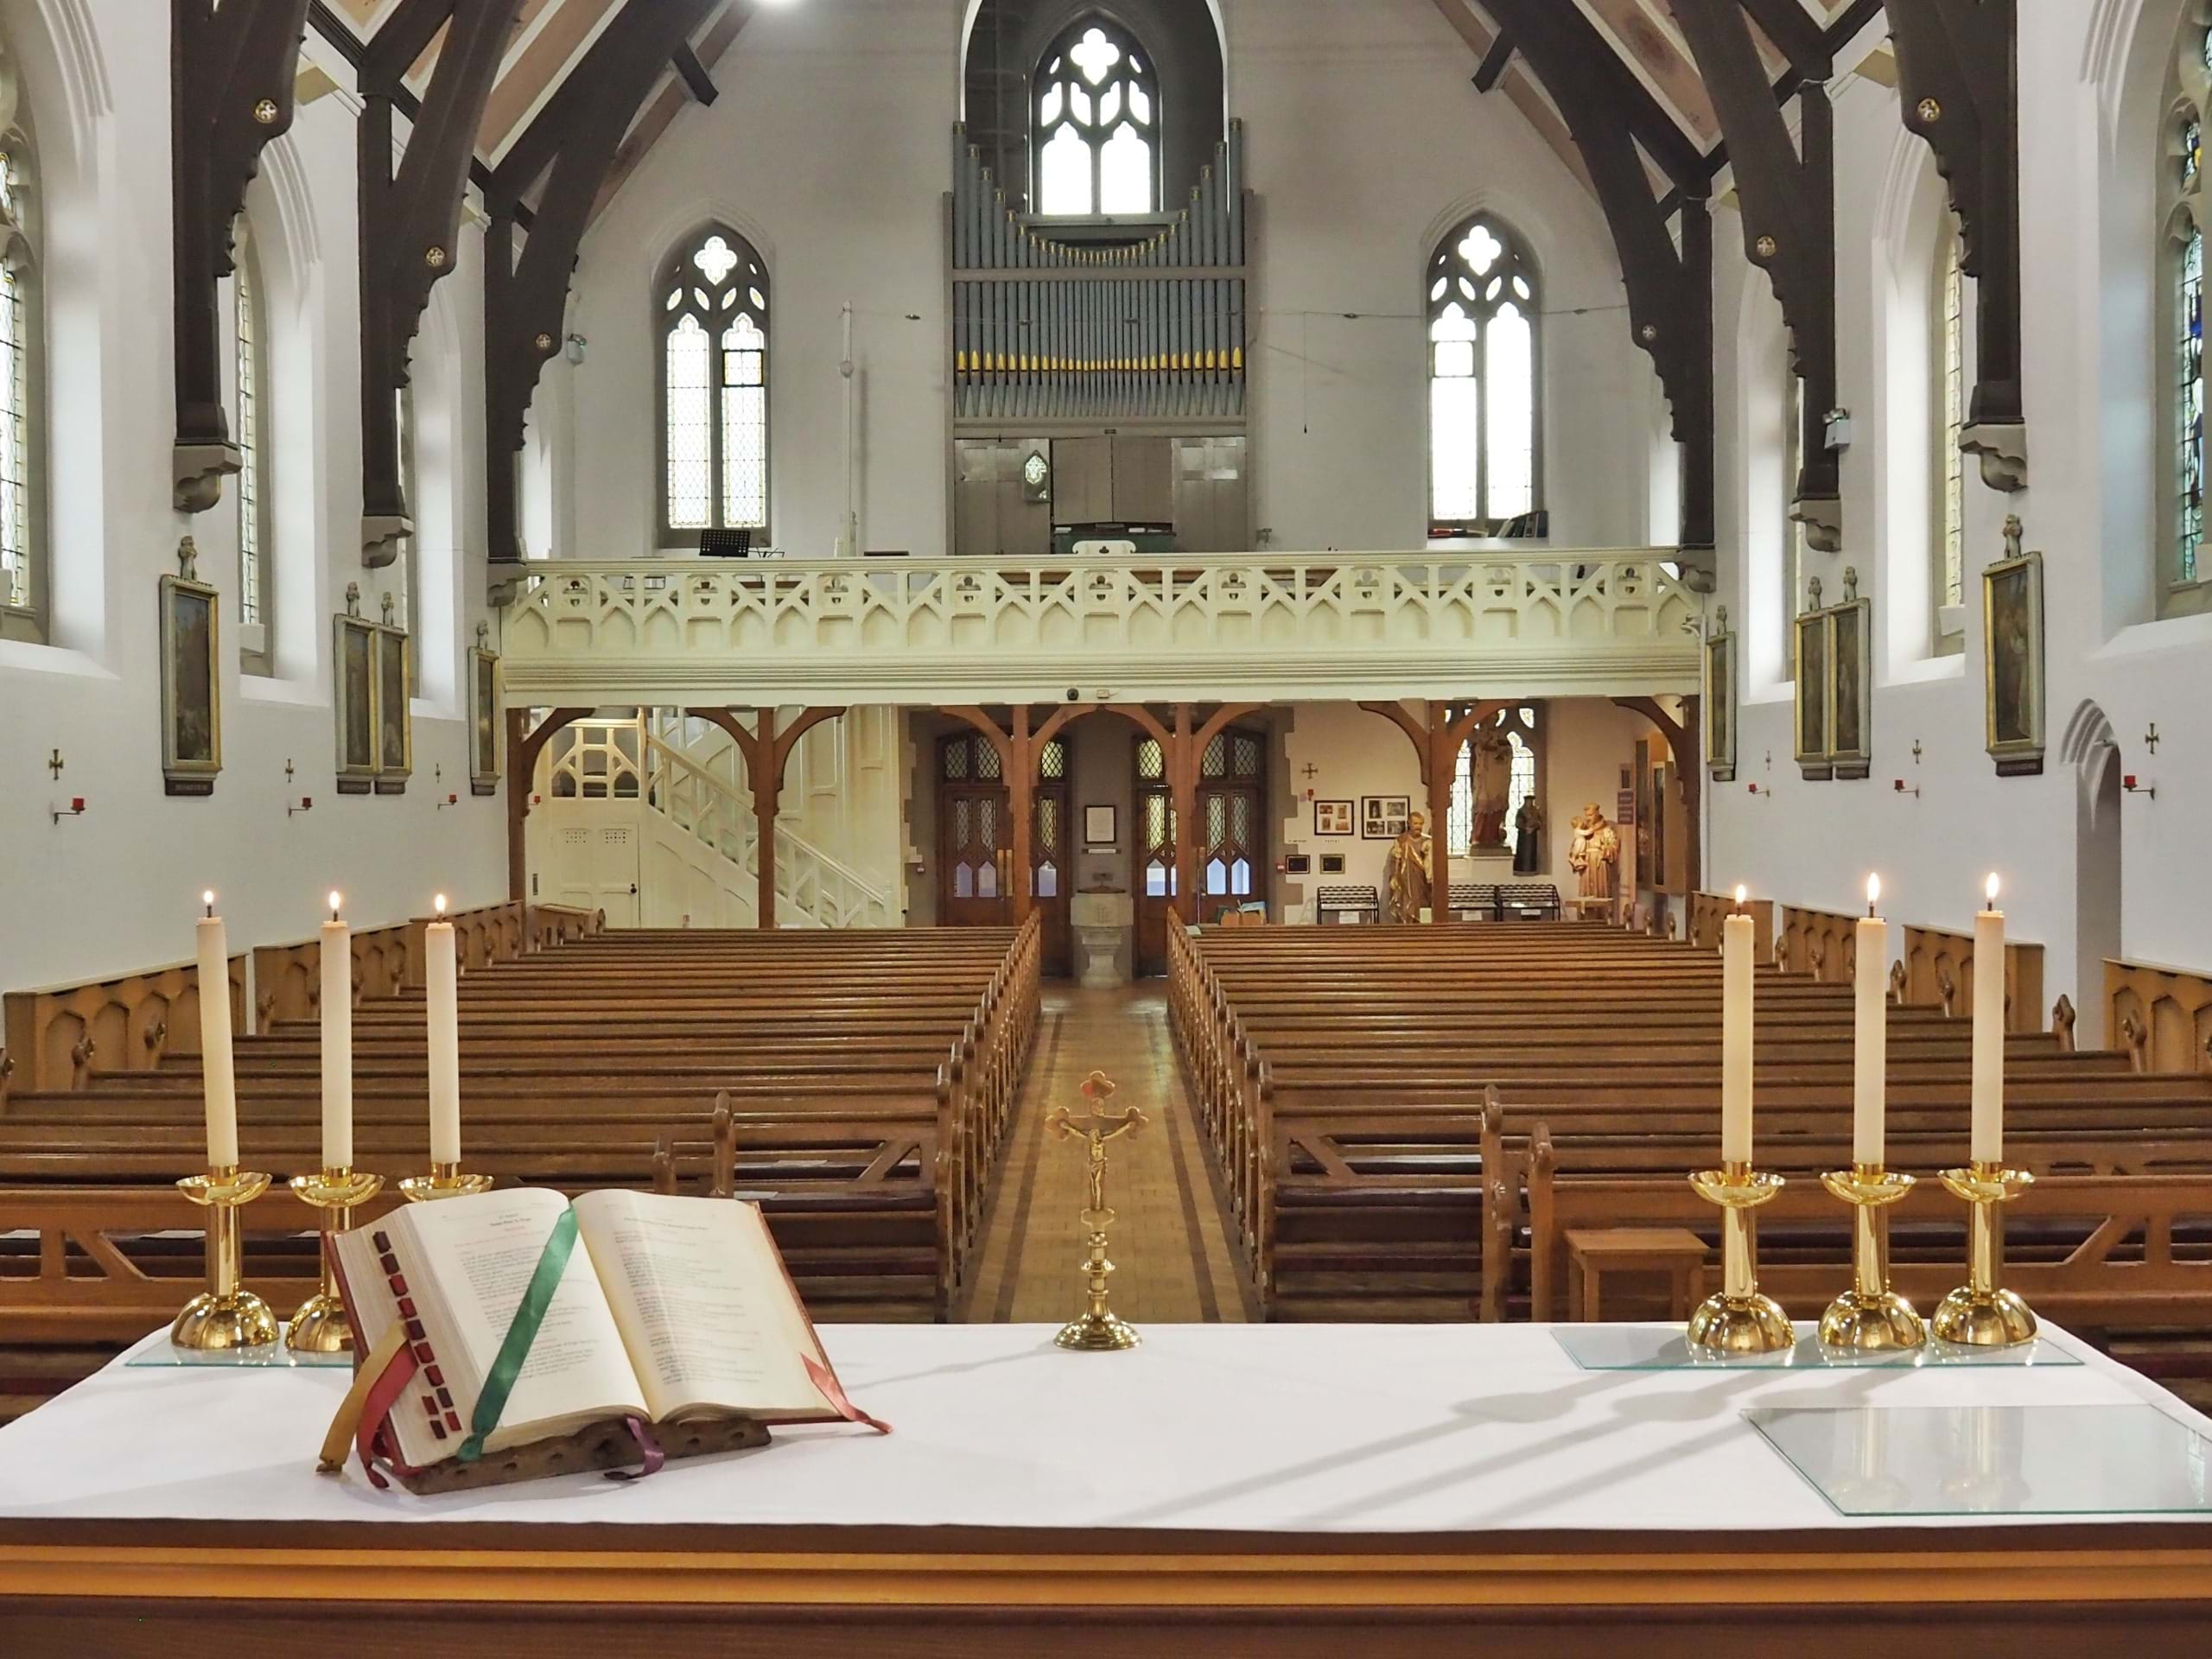 St Charles Church - View from Altar